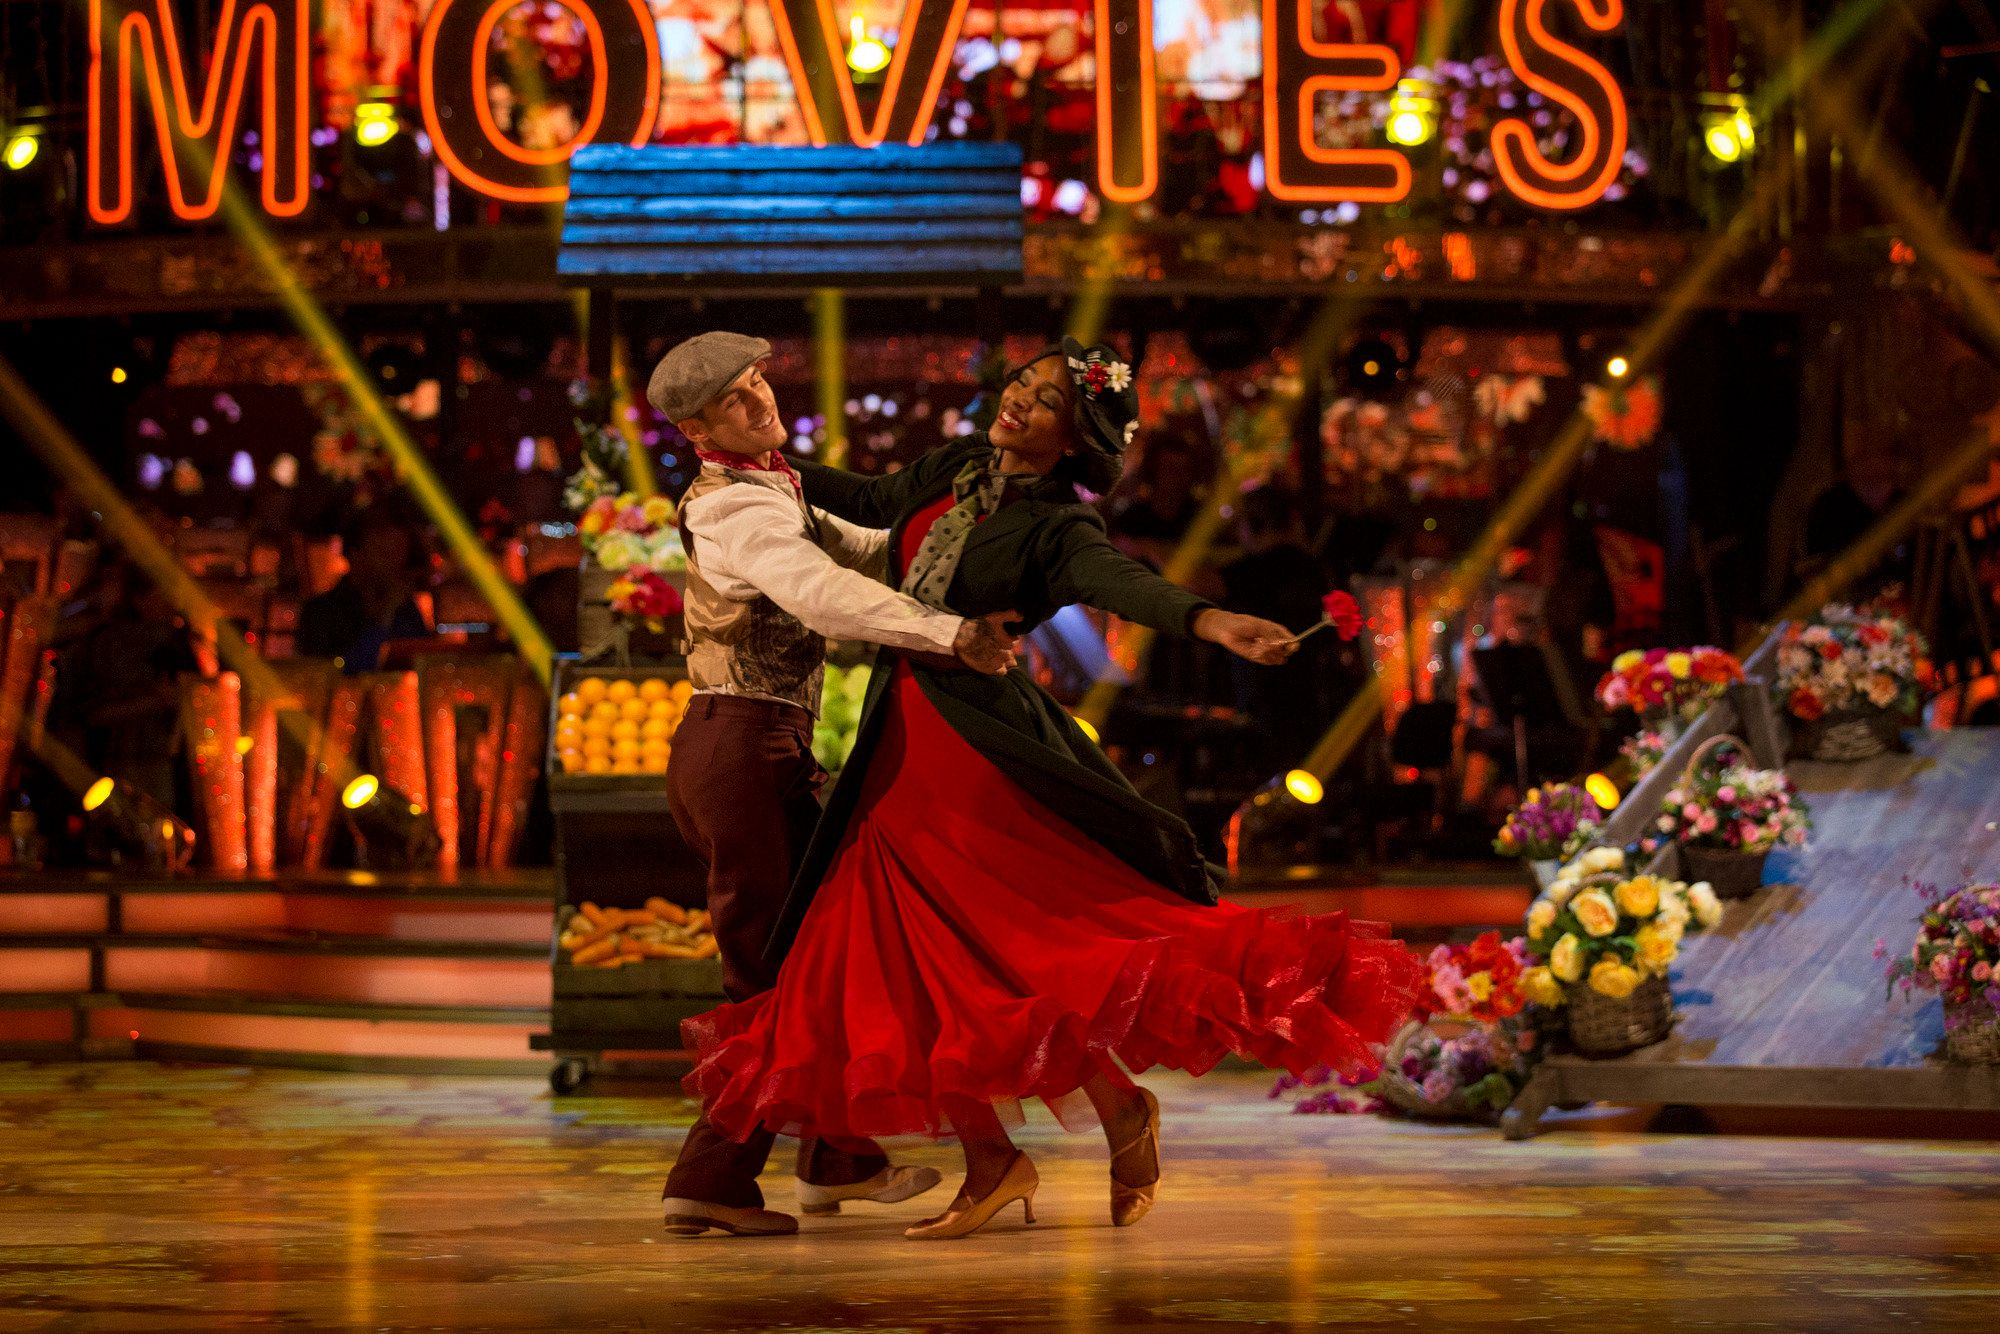 'Strictly Come Dancing' Reveals Final Songs And Dances, But There's Still Some Surprises In